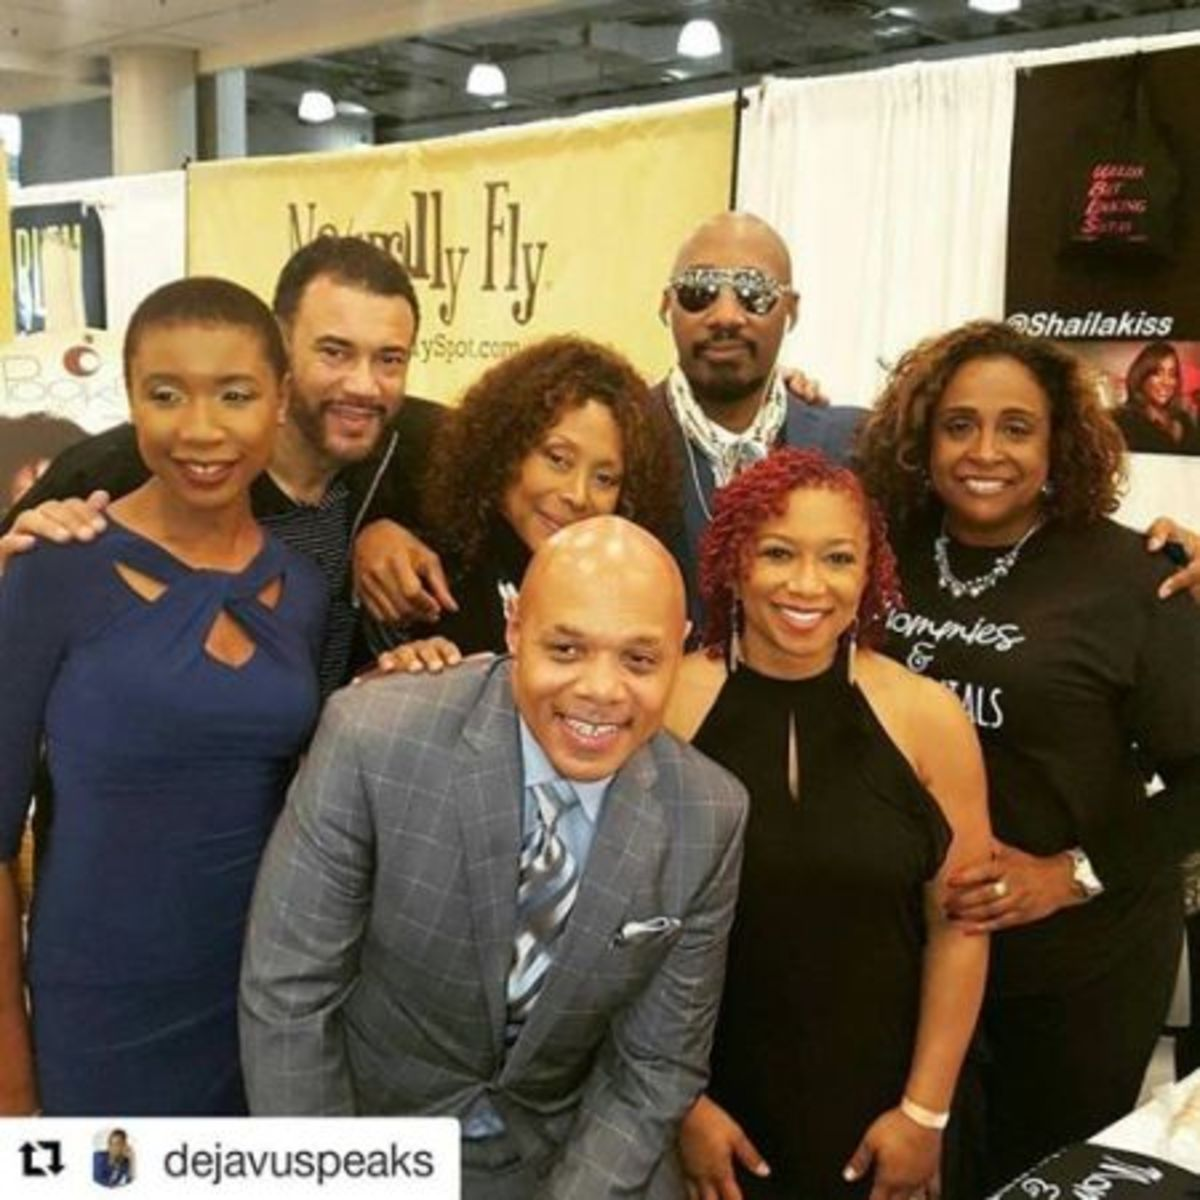 One of my favorite pics of the weekend with some of my co-workers at WBLS (L to R) @DrBobLee, @AnnTrip @DahvedLevy @shailakiss @dejavuspeaks @LennyGreen